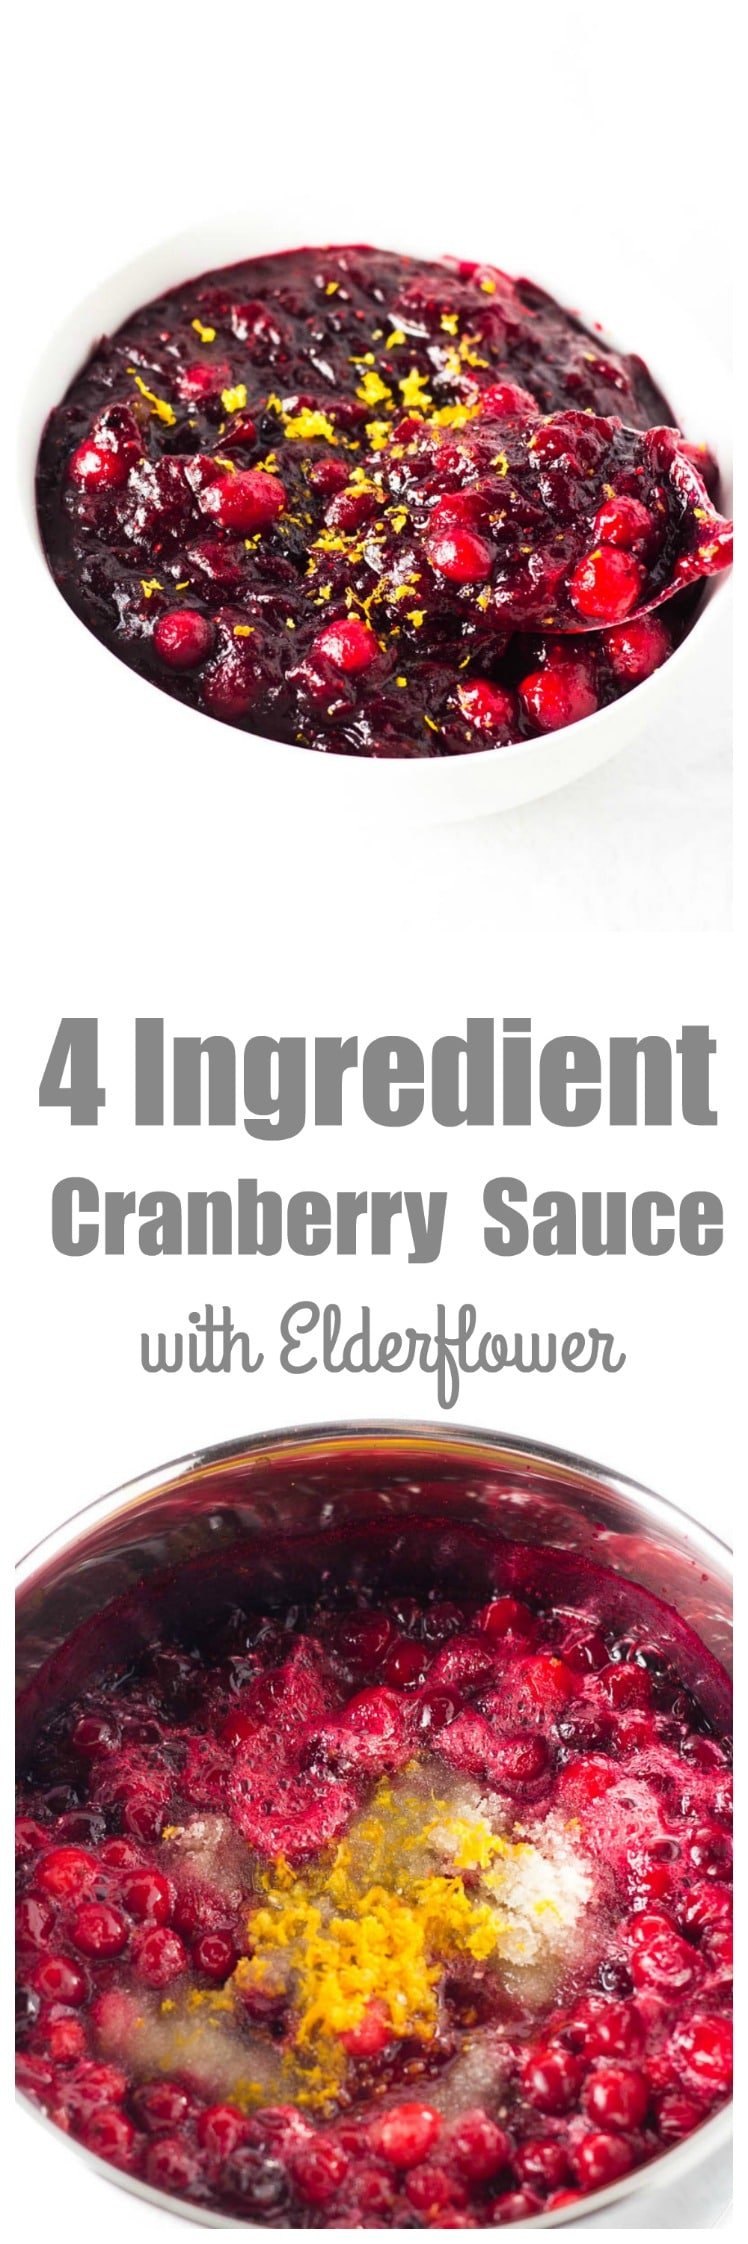 My simple cranberry sauce will only take 20 minutes but tastes like it came straight out of a gourmet French kitchen! It takes 4 ingredients and 5 minutes of prep time to have this delicious and simple cranberry sauce on your Thanksgiving table right alongside your perfect turkey!